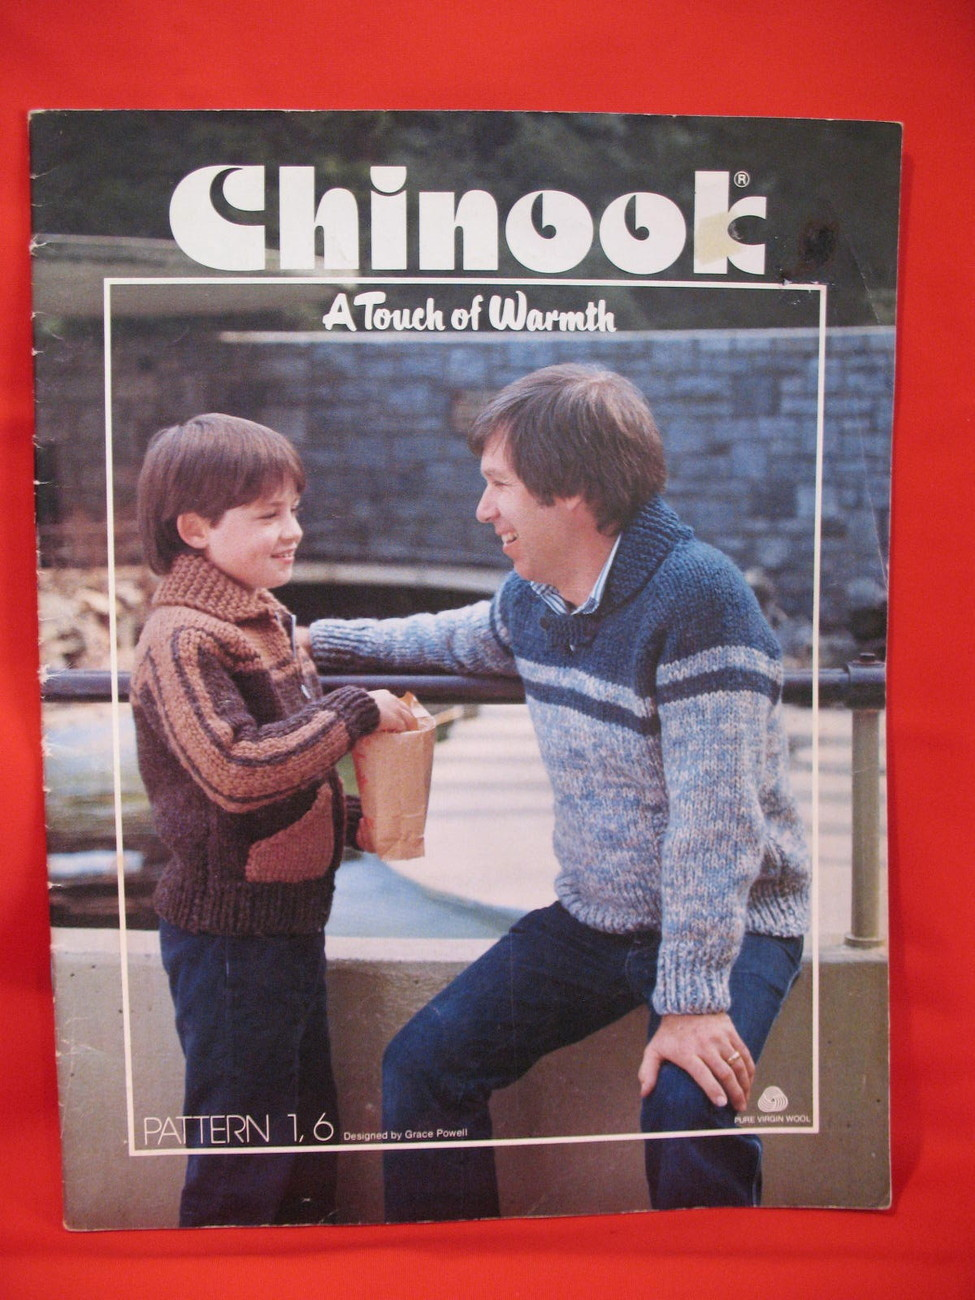 Chinook Family Knitting Patterns Sweaters Vests Pullovers